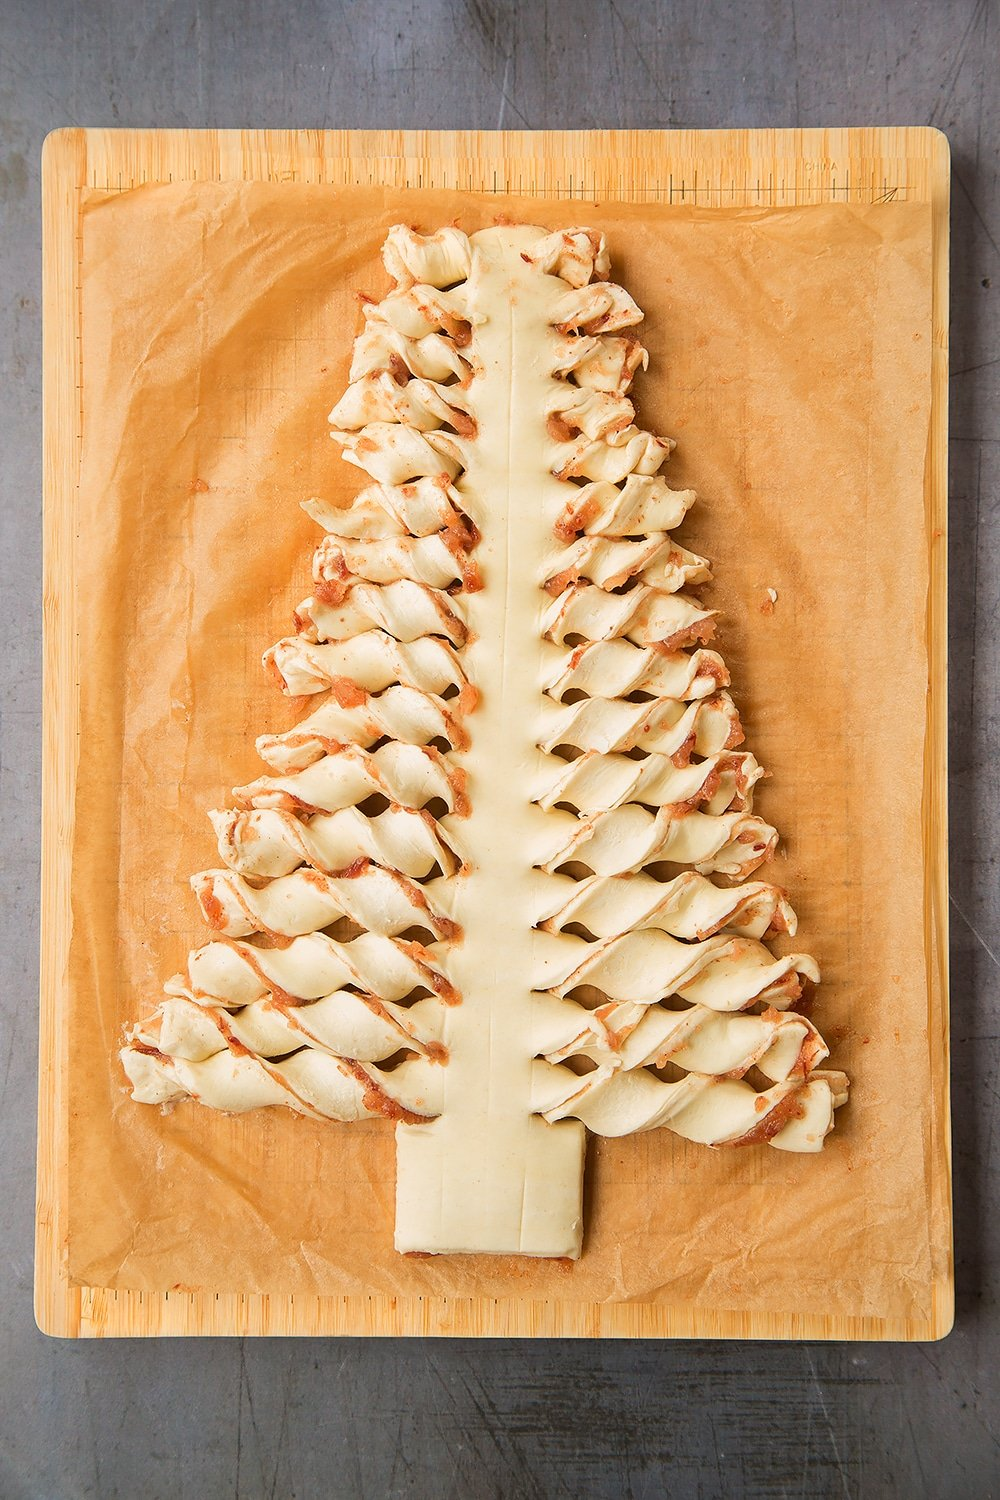 Twist the tree branches to create this puff pastry Christmas tree